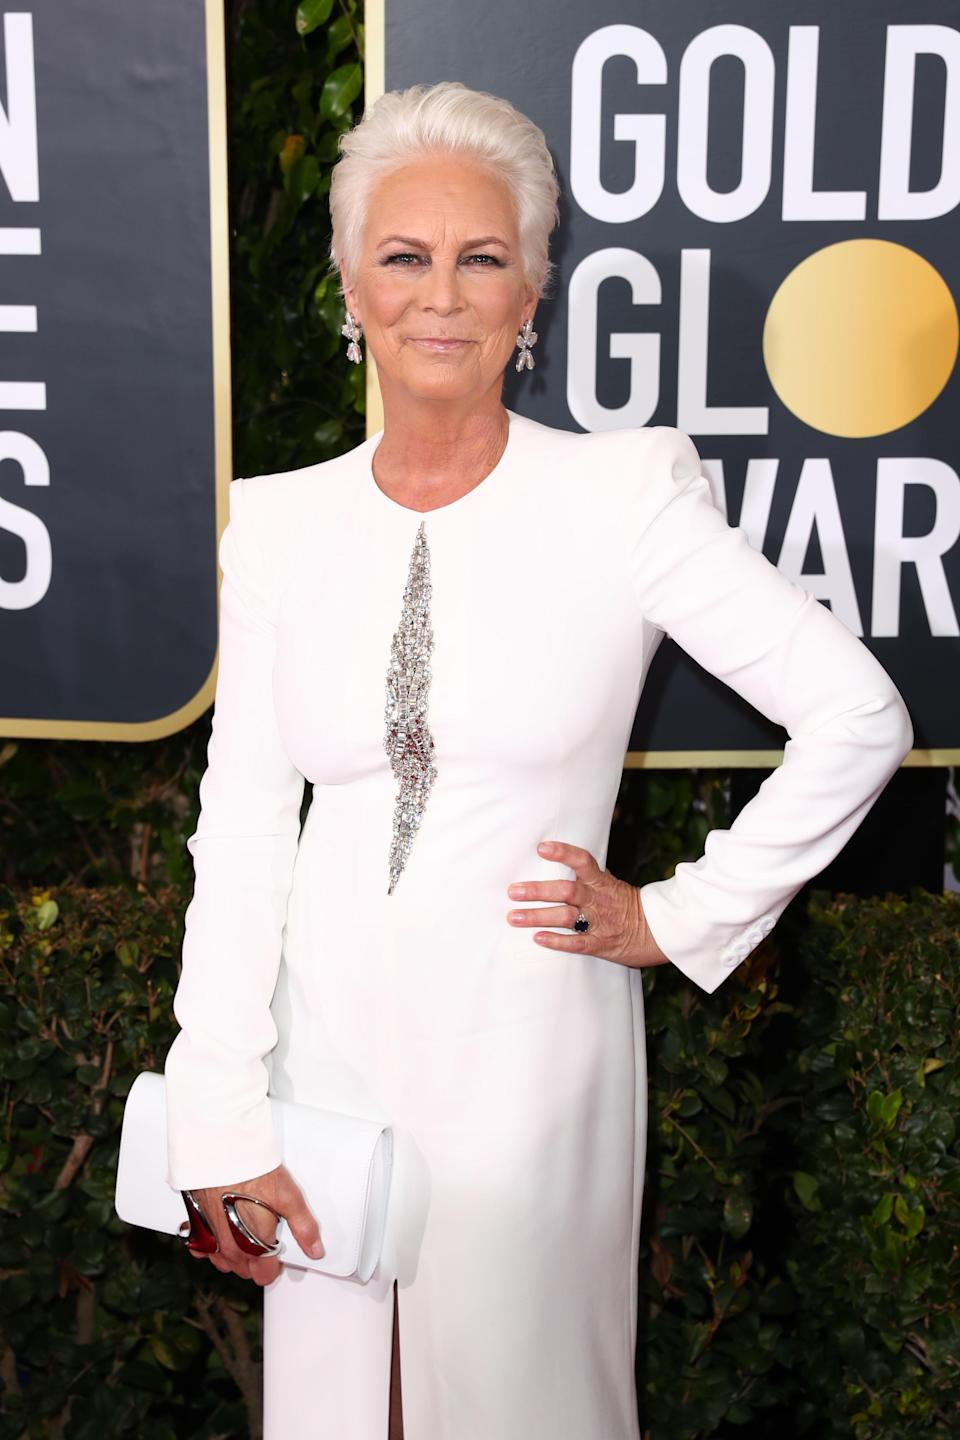 "<p>Back in 2002, actress Jamie Lee Curtis claimed that she's had ""it all done"". ""I've had a little plastic surgery. I've had a little lipo. I've had a little botox. And you know what? None of it works. None of it,"" she <a href=""https://www.telegraph.co.uk/news/worldnews/northamerica/usa/1405016/Nips-tucks-and-liposuction-dont-work-Ive-still-got-bad-thighs-and-a-fat-tummy.html"" rel=""nofollow noopener"" target=""_blank"" data-ylk=""slk:revealed"" class=""link rapid-noclick-resp"">revealed</a>. <em>[Photo: Getty]</em> </p>"